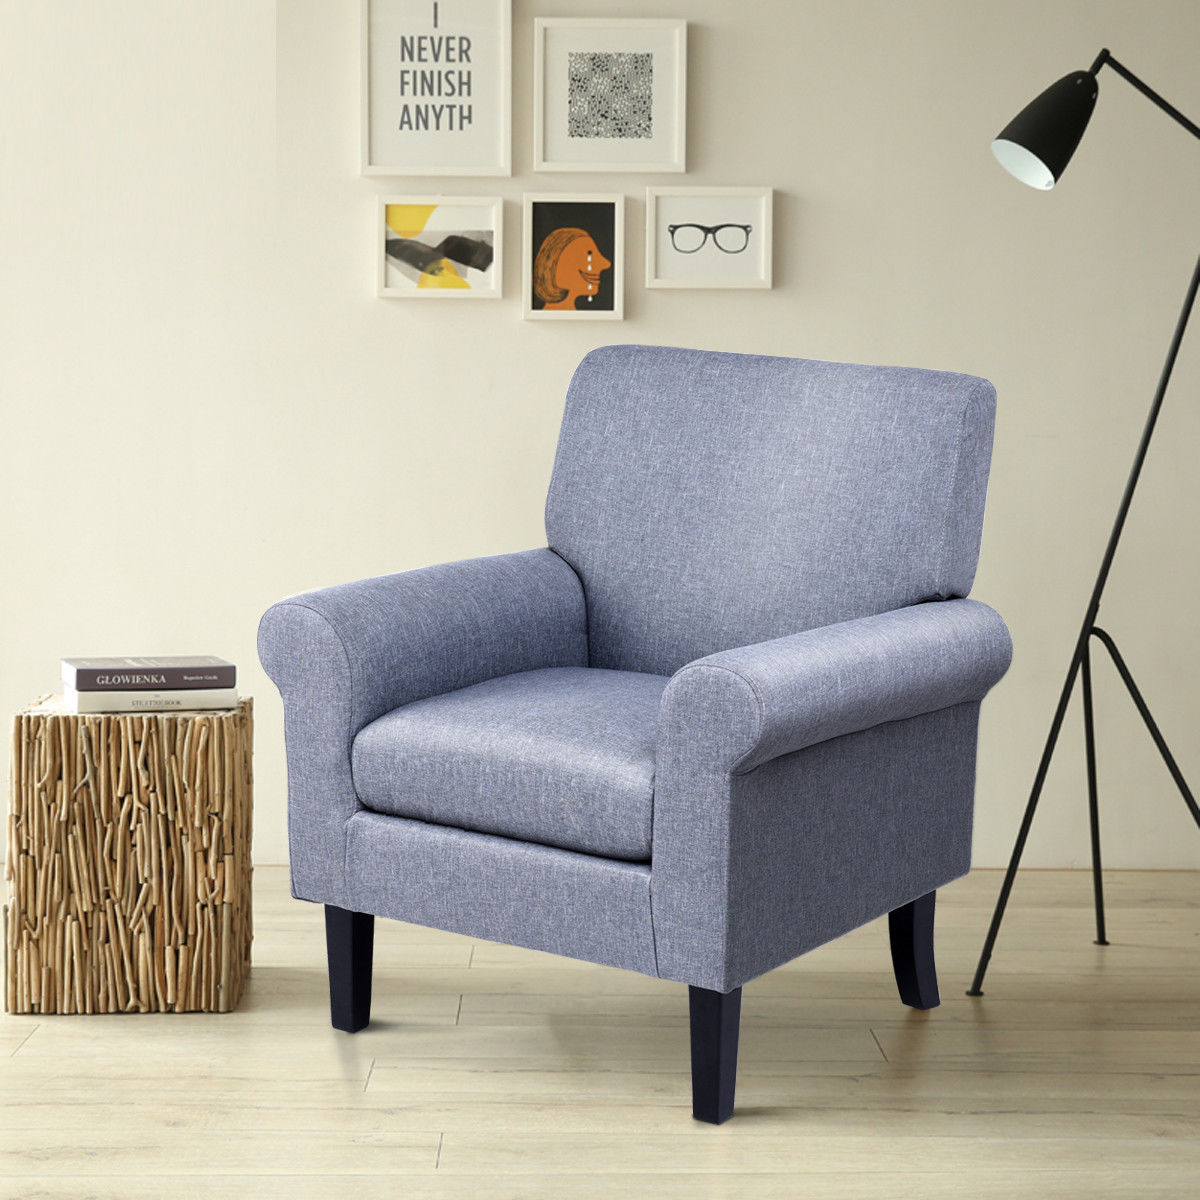 living room upholstered upholstery chair livings luxury dining of chairs cleaning ideas couch padding furniture